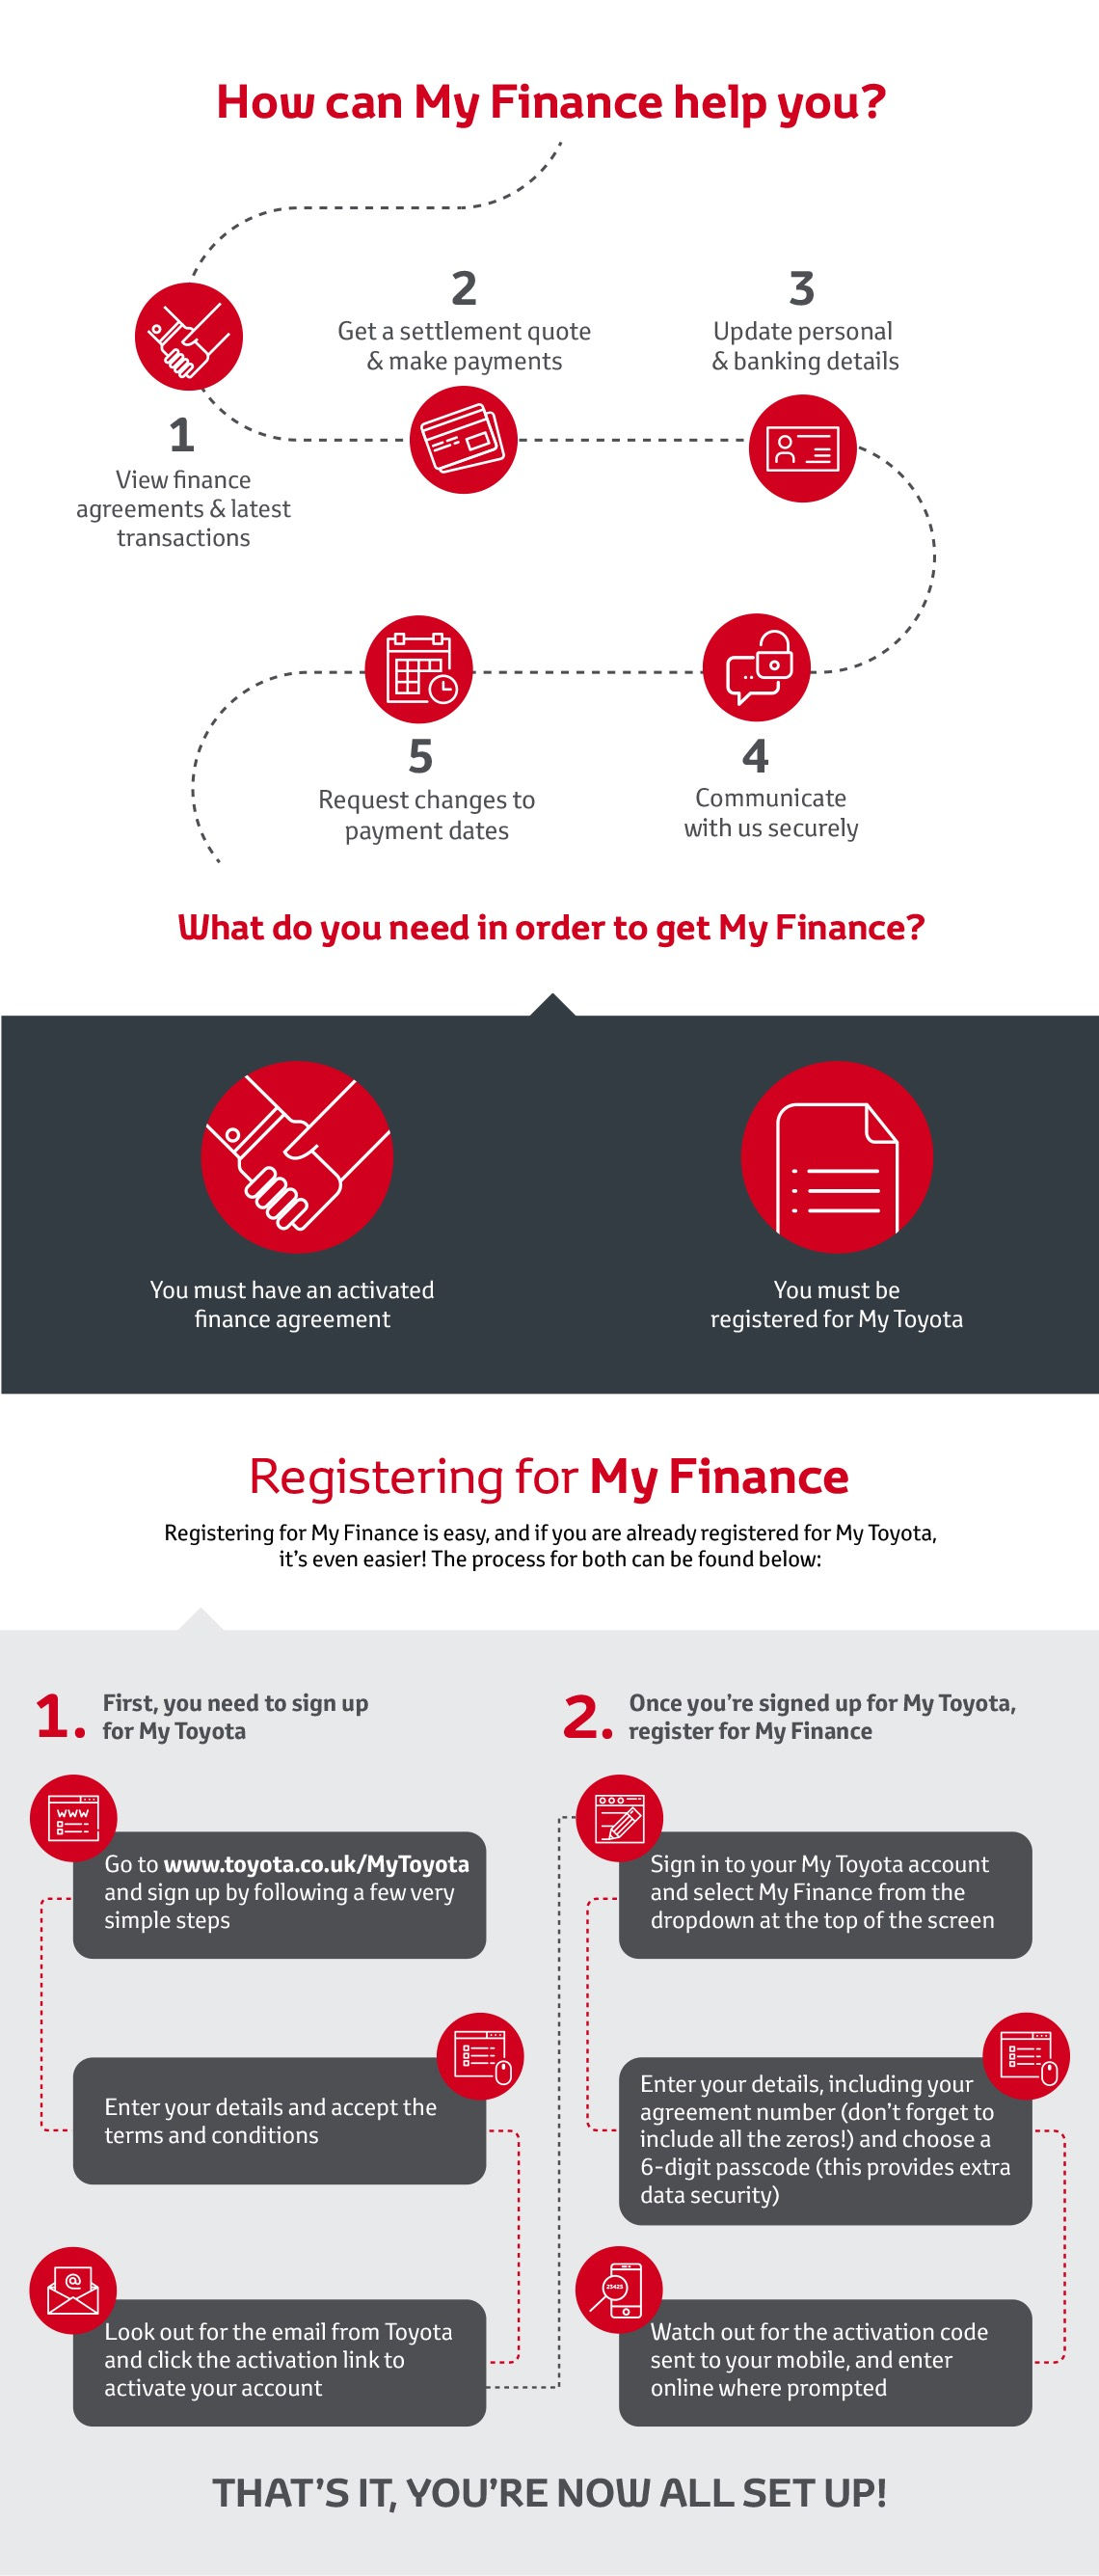 Download the my toyota finance app so you can do all of this on the go from the apple store or from google play